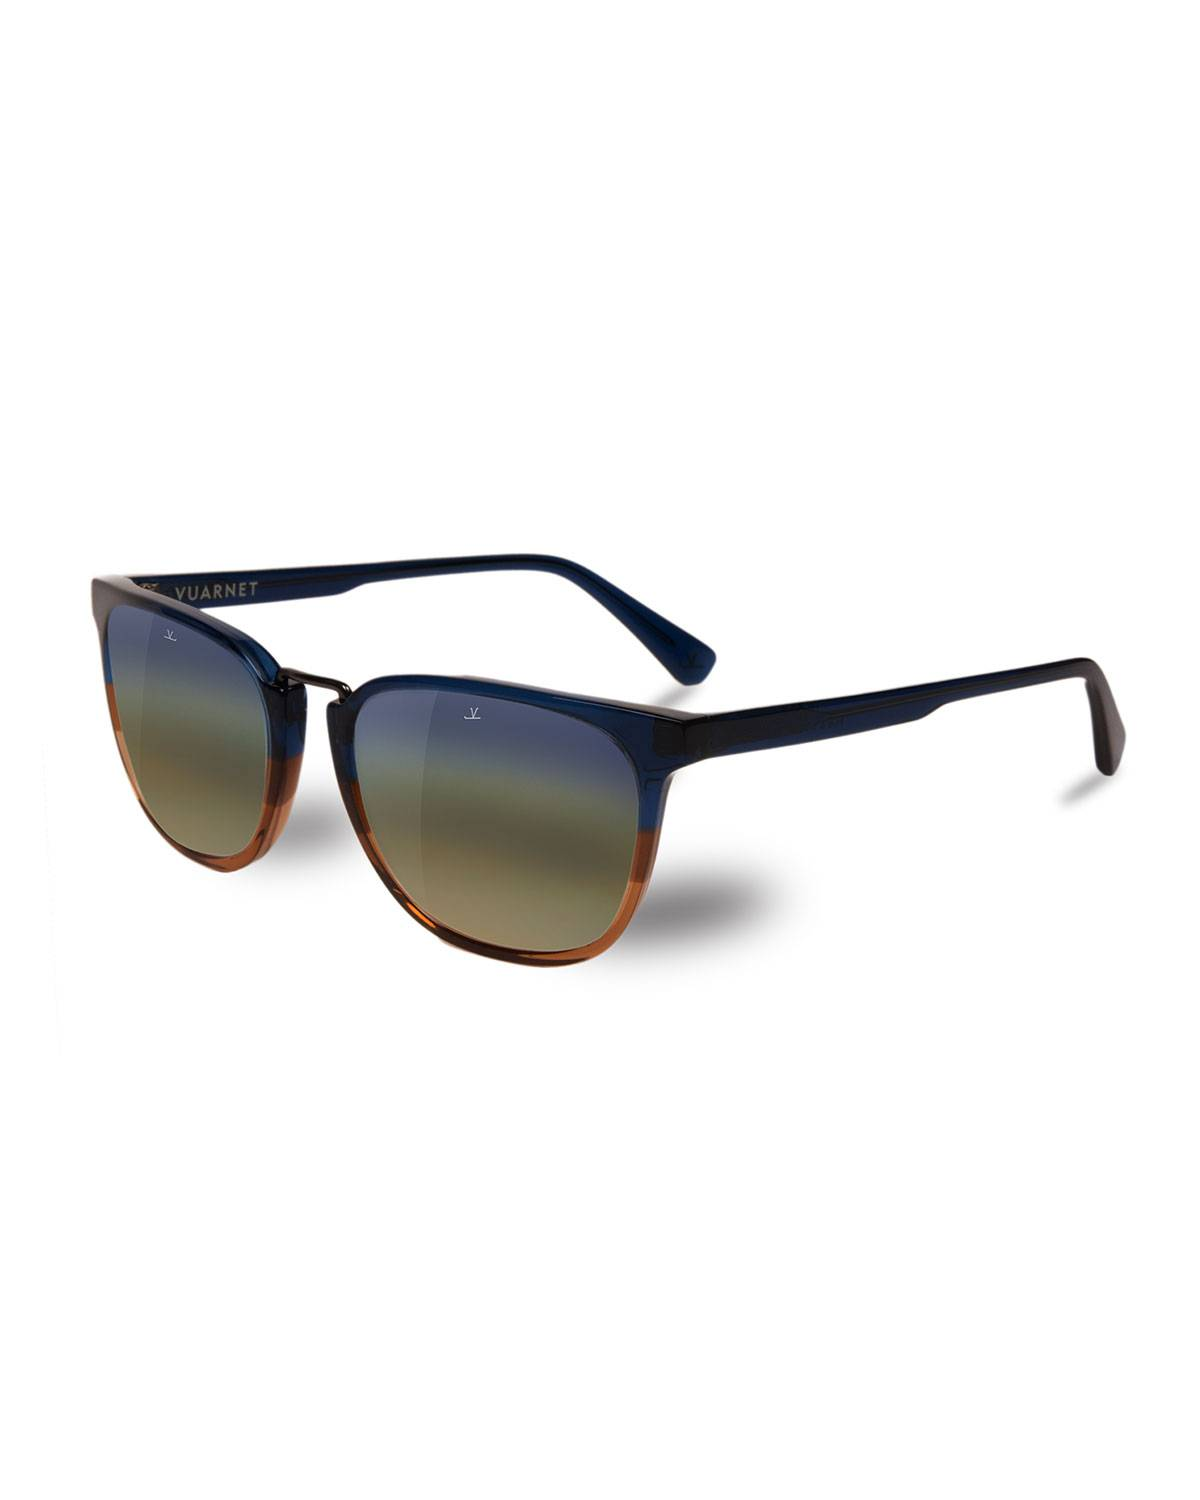 Vuarnet Men's Cable Car Square Flash Stainless Steel/Acetate Sunglasses